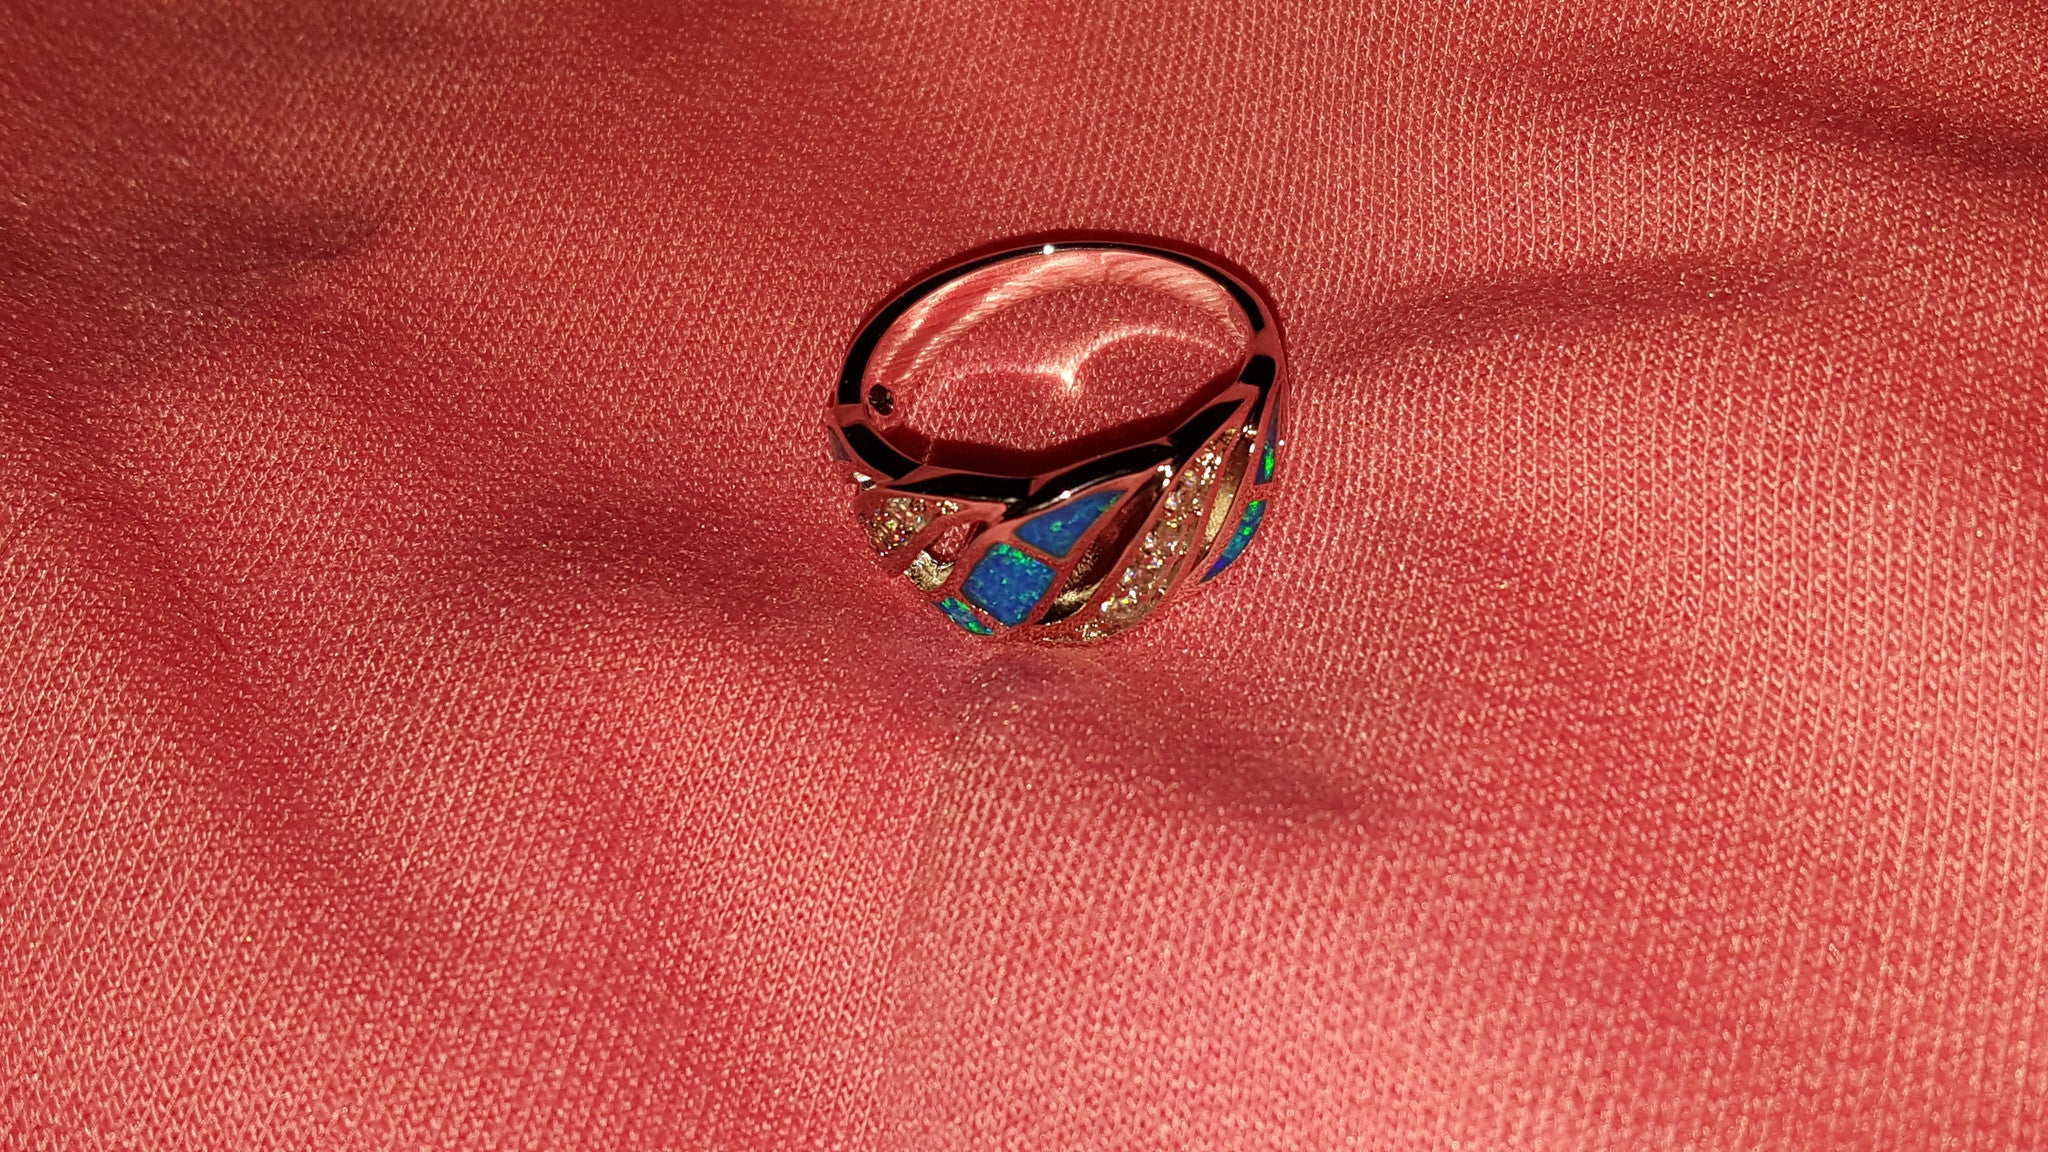 Opal Sterling Silver Ring -  New Fashion Finds By Carole